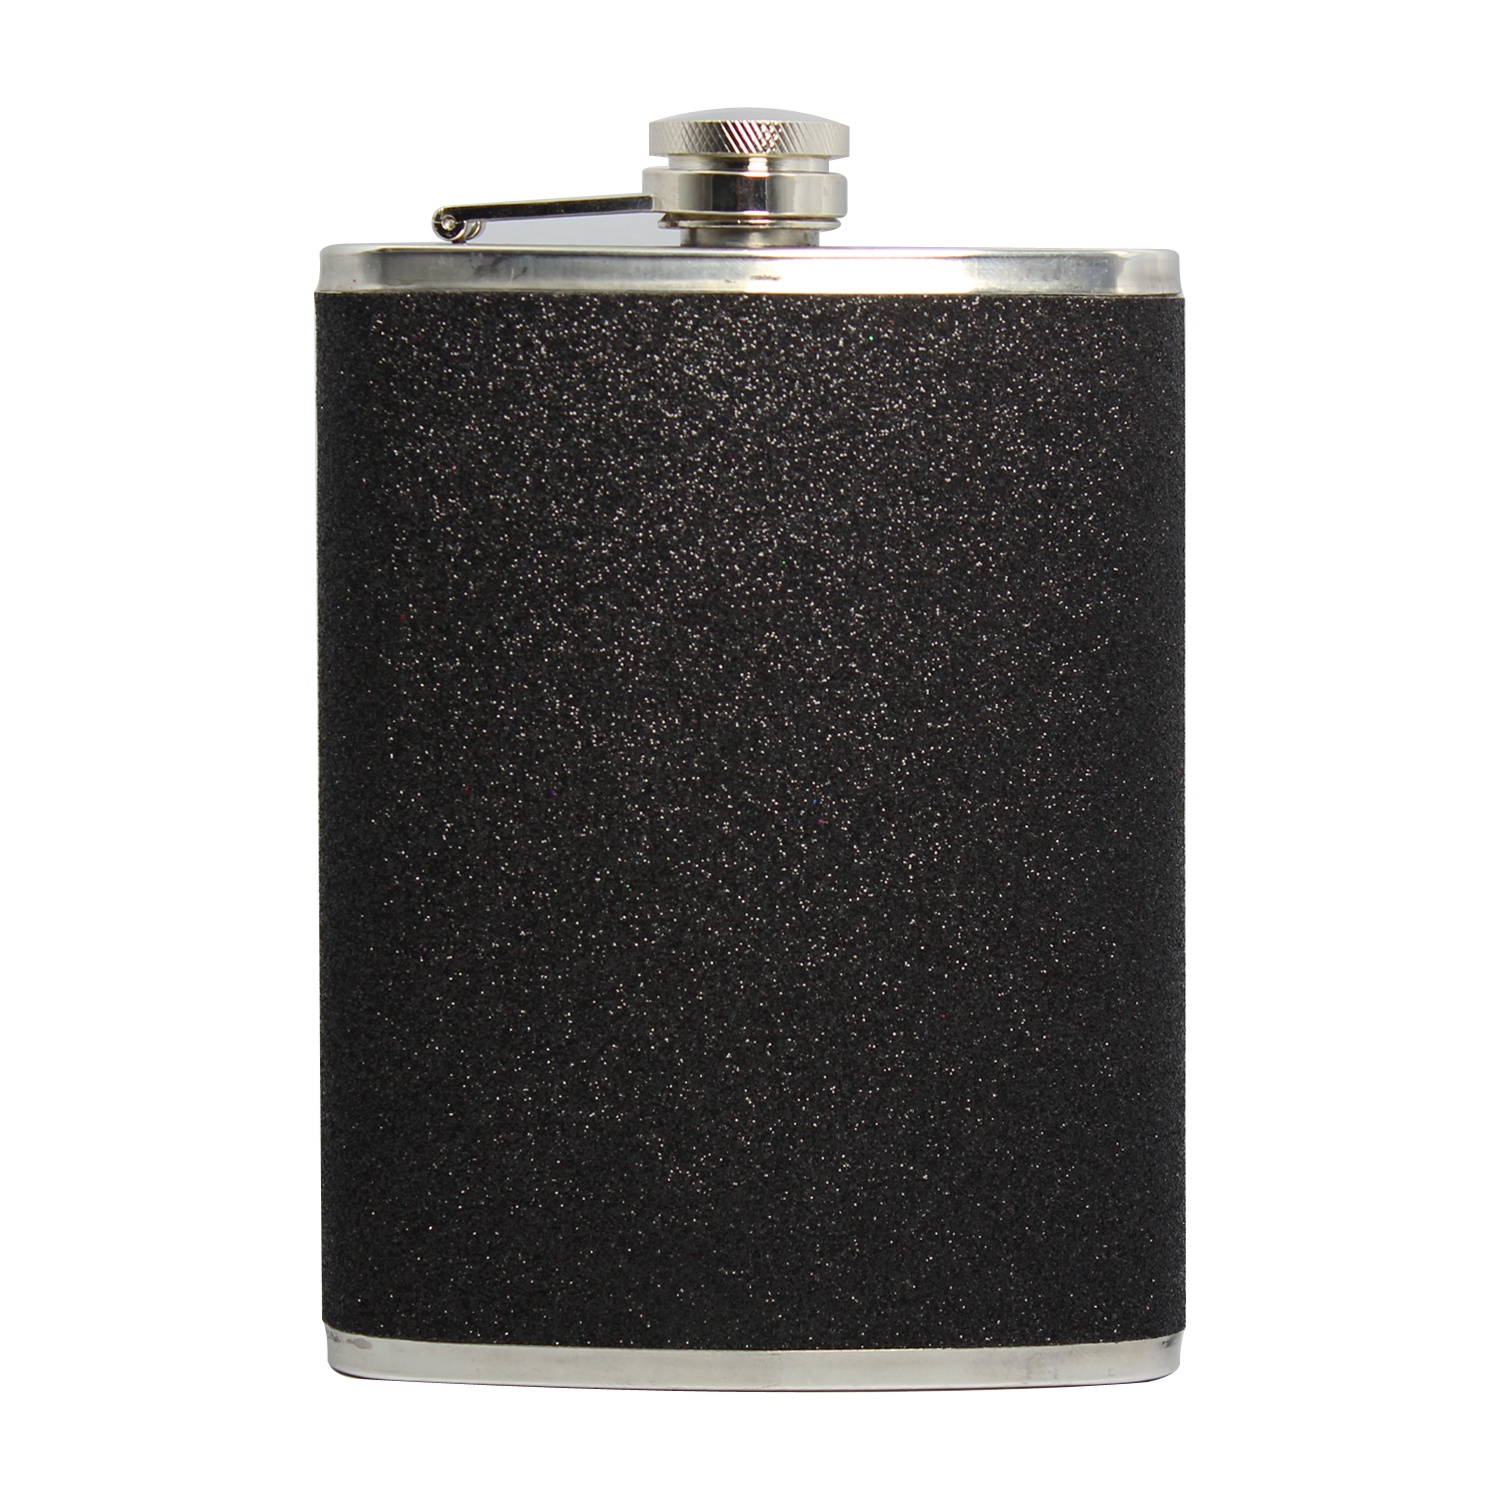 8oz-Stainless-Steel-Hip-Liquor-Whiskey-Alcohol-Flask-Funnel-Pocket-Wine-Bottle